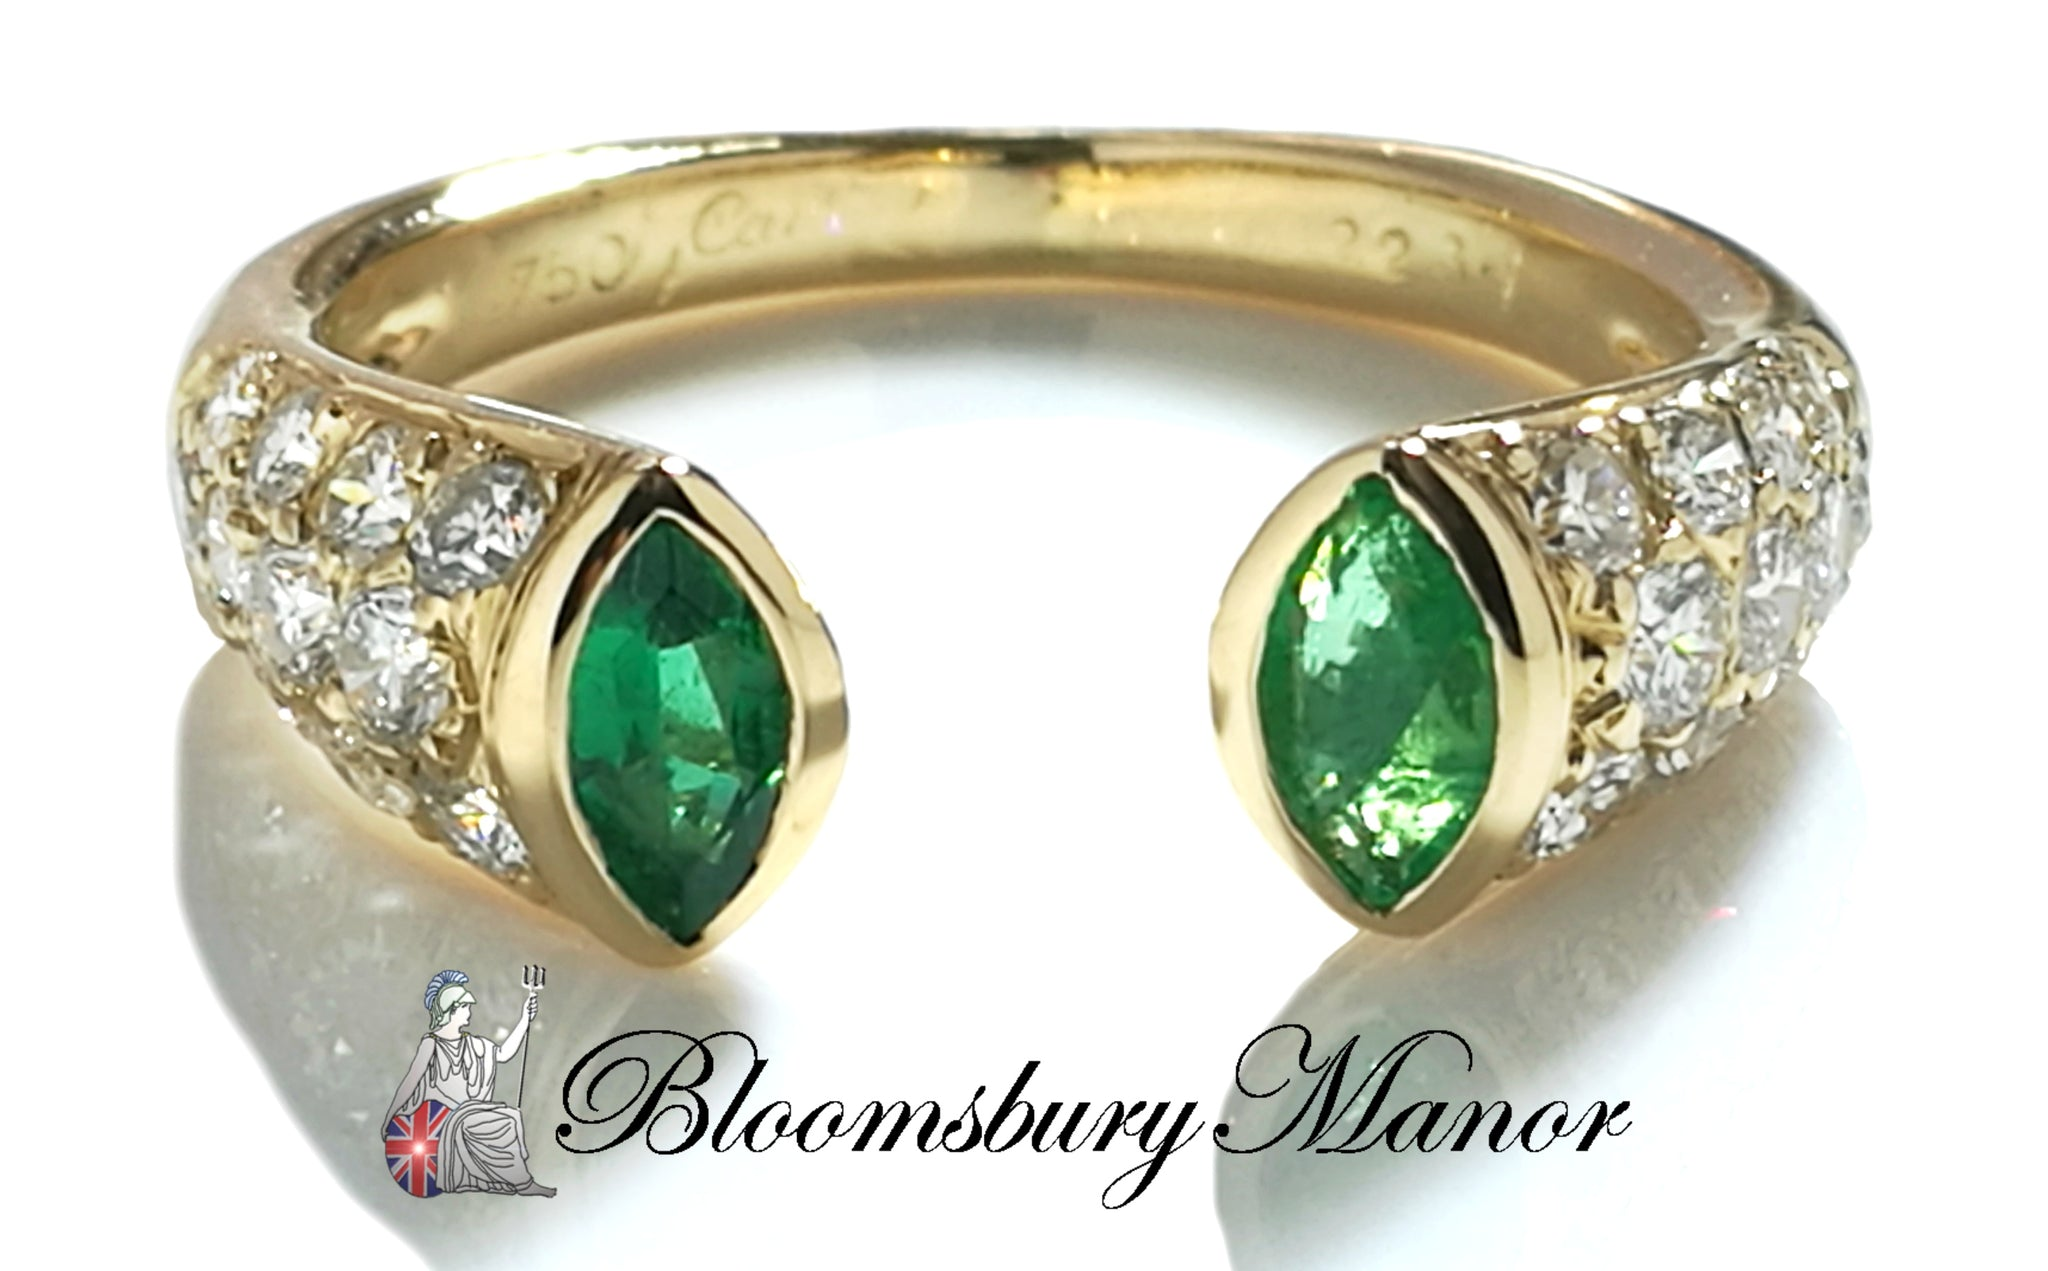 ring cz cushion cut r bling color emerald band byj micropave rectangle engagement jewelry